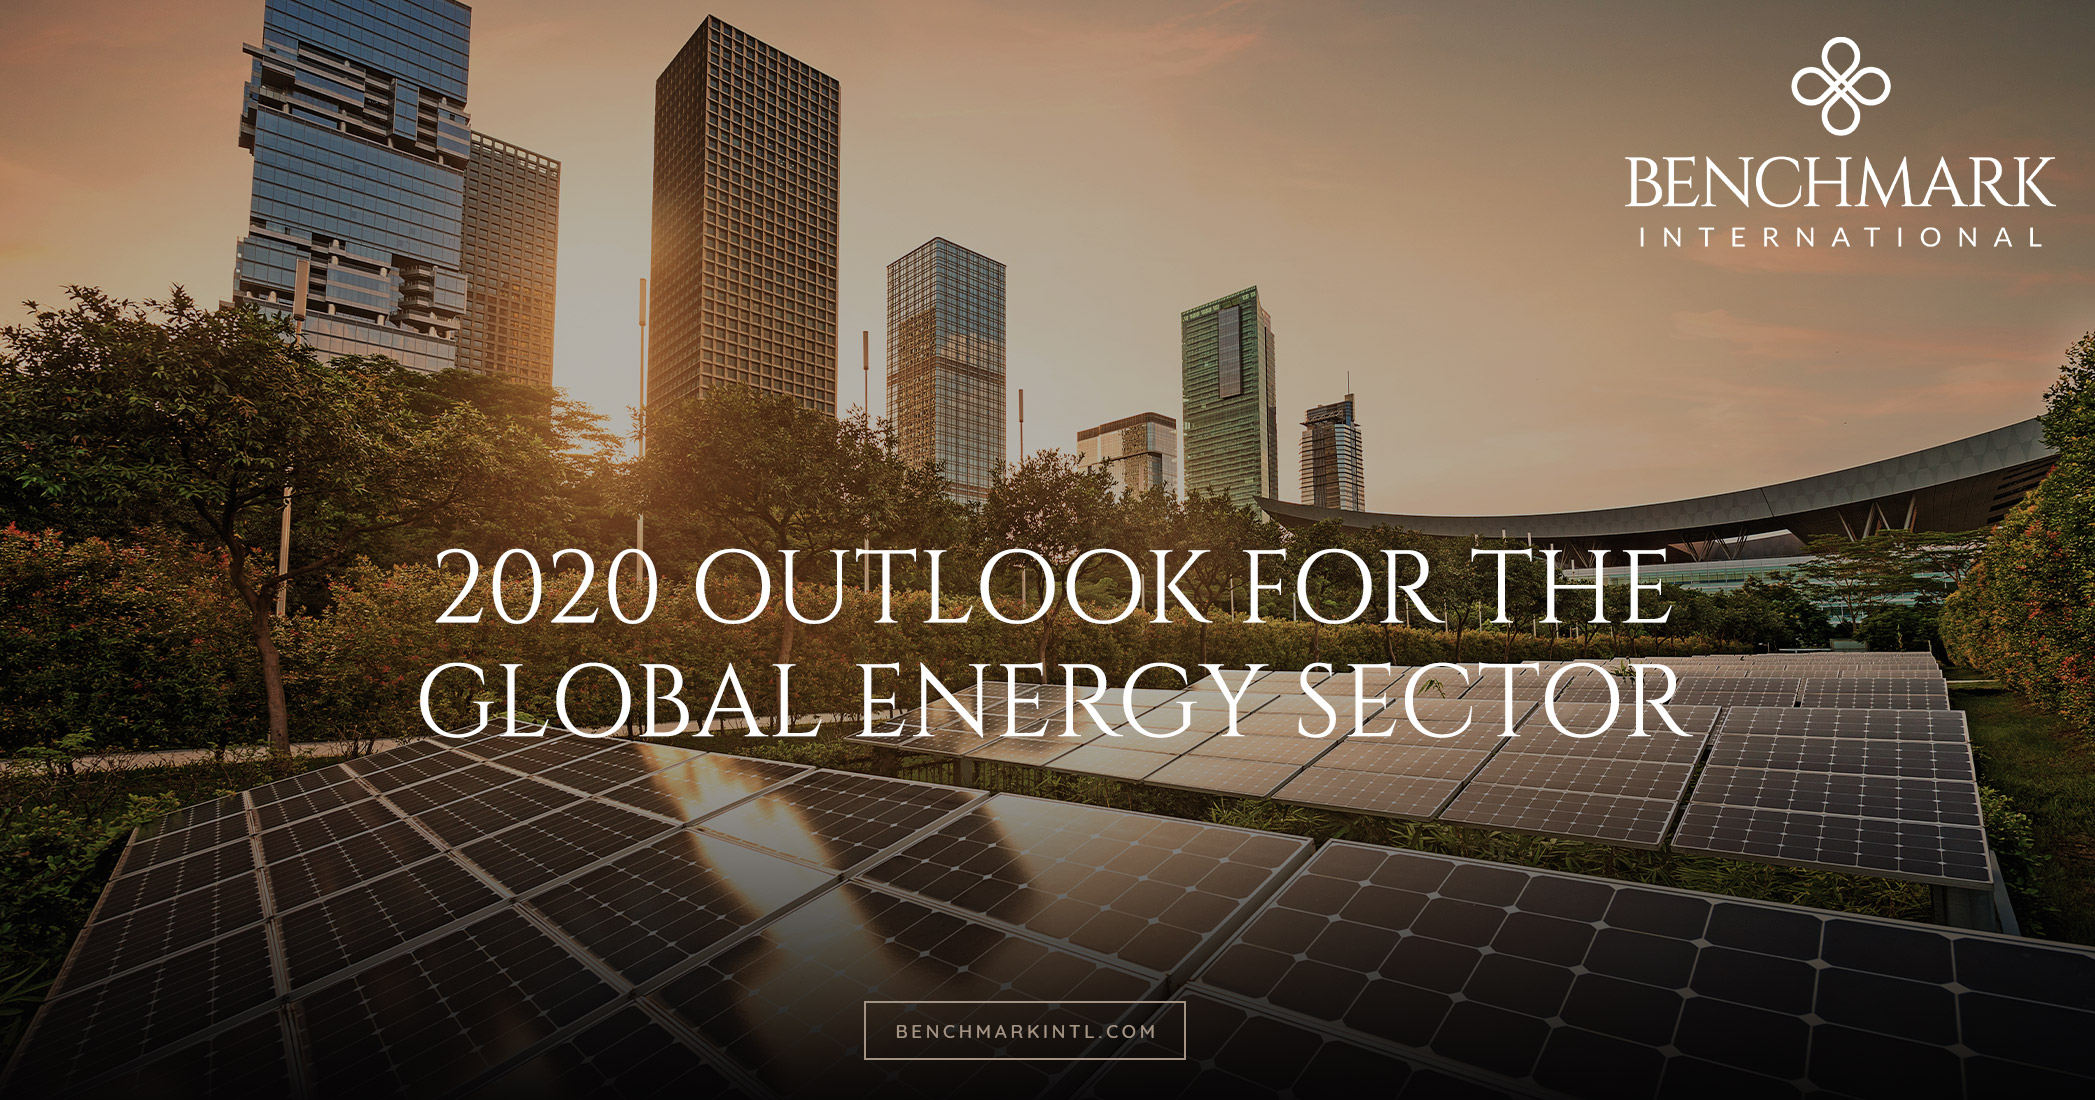 2020 Outlook For The Global Energy Sector